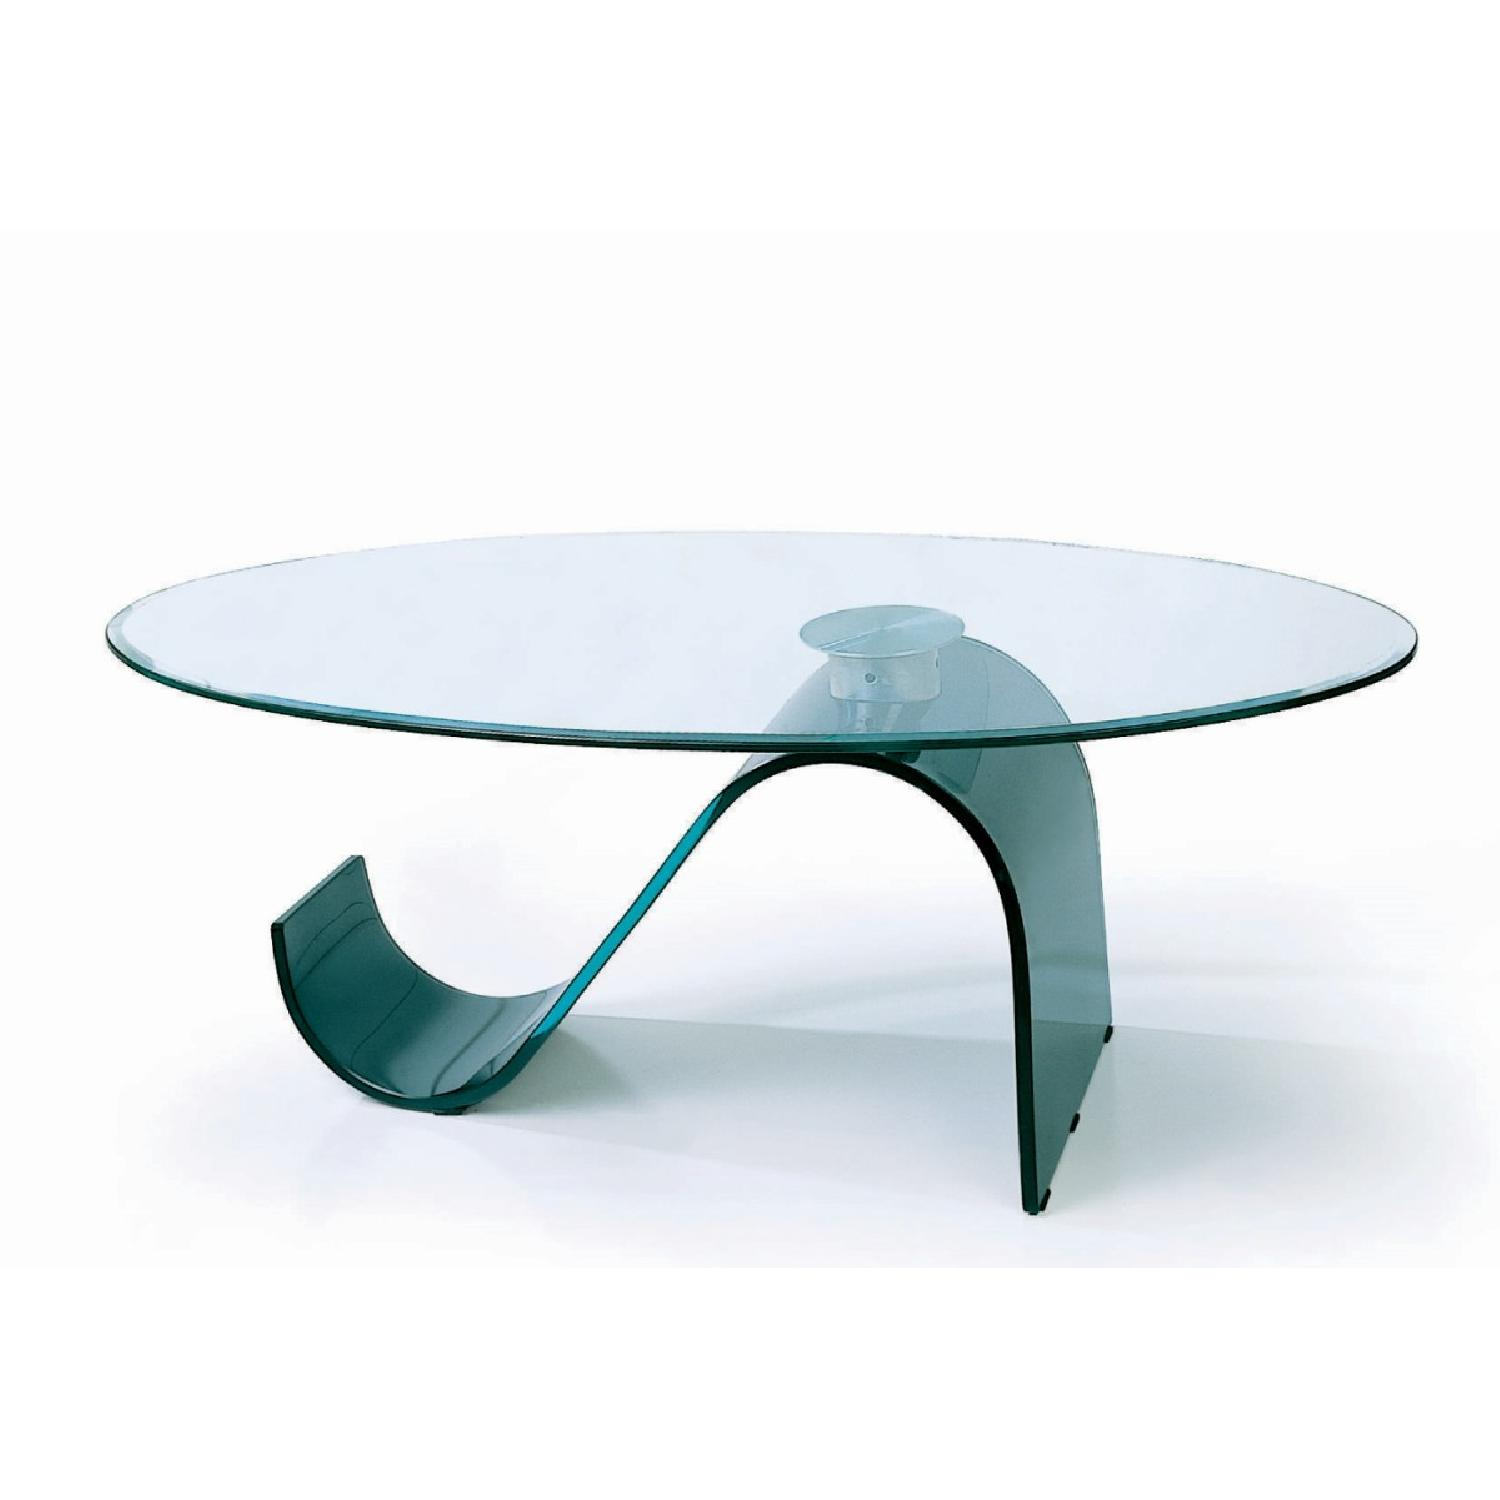 Modern Coffee Table w/ Thick Oval Tempered Glass Top &S Shap-0